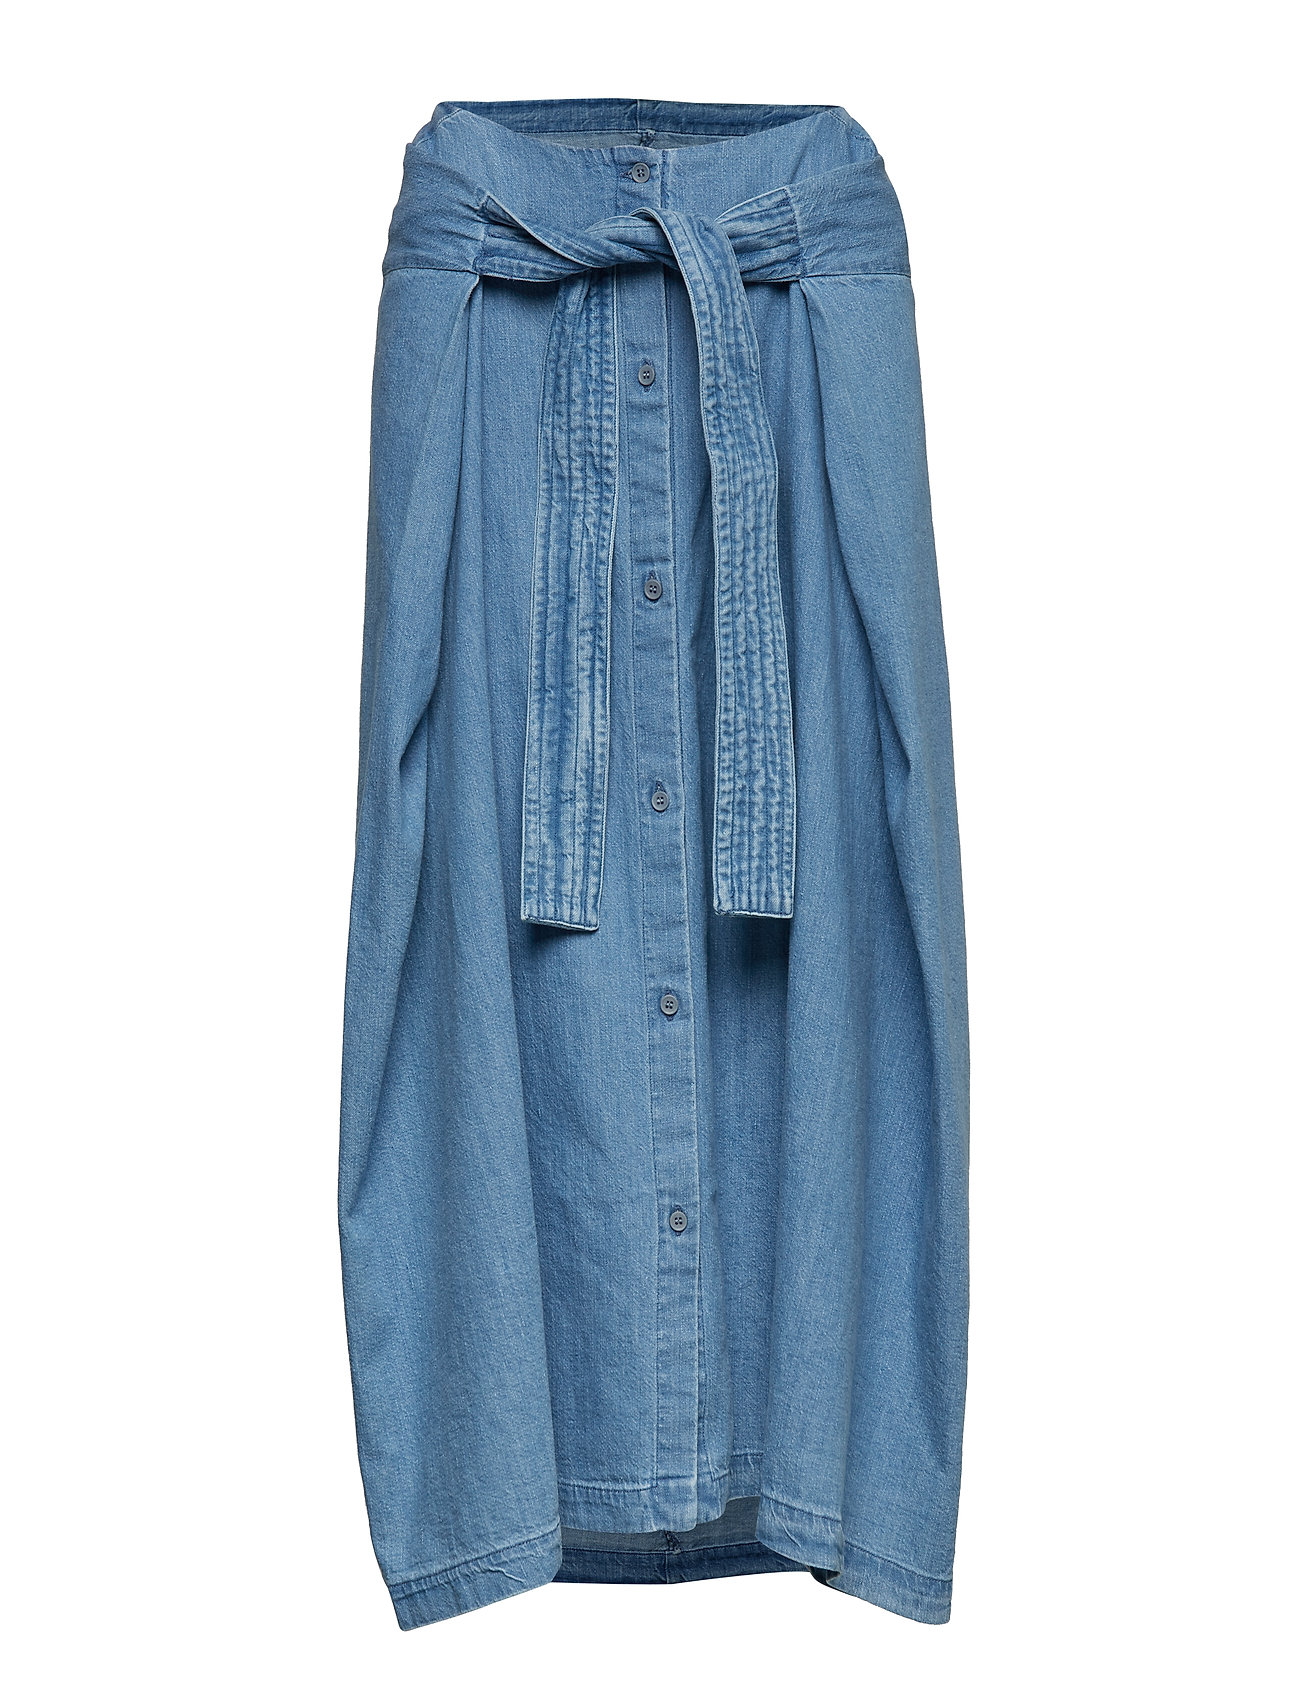 Levi's Made & Crafted LMC FIELD SKIRT LMC COMFORT DE - MED INDIGO - WORN IN